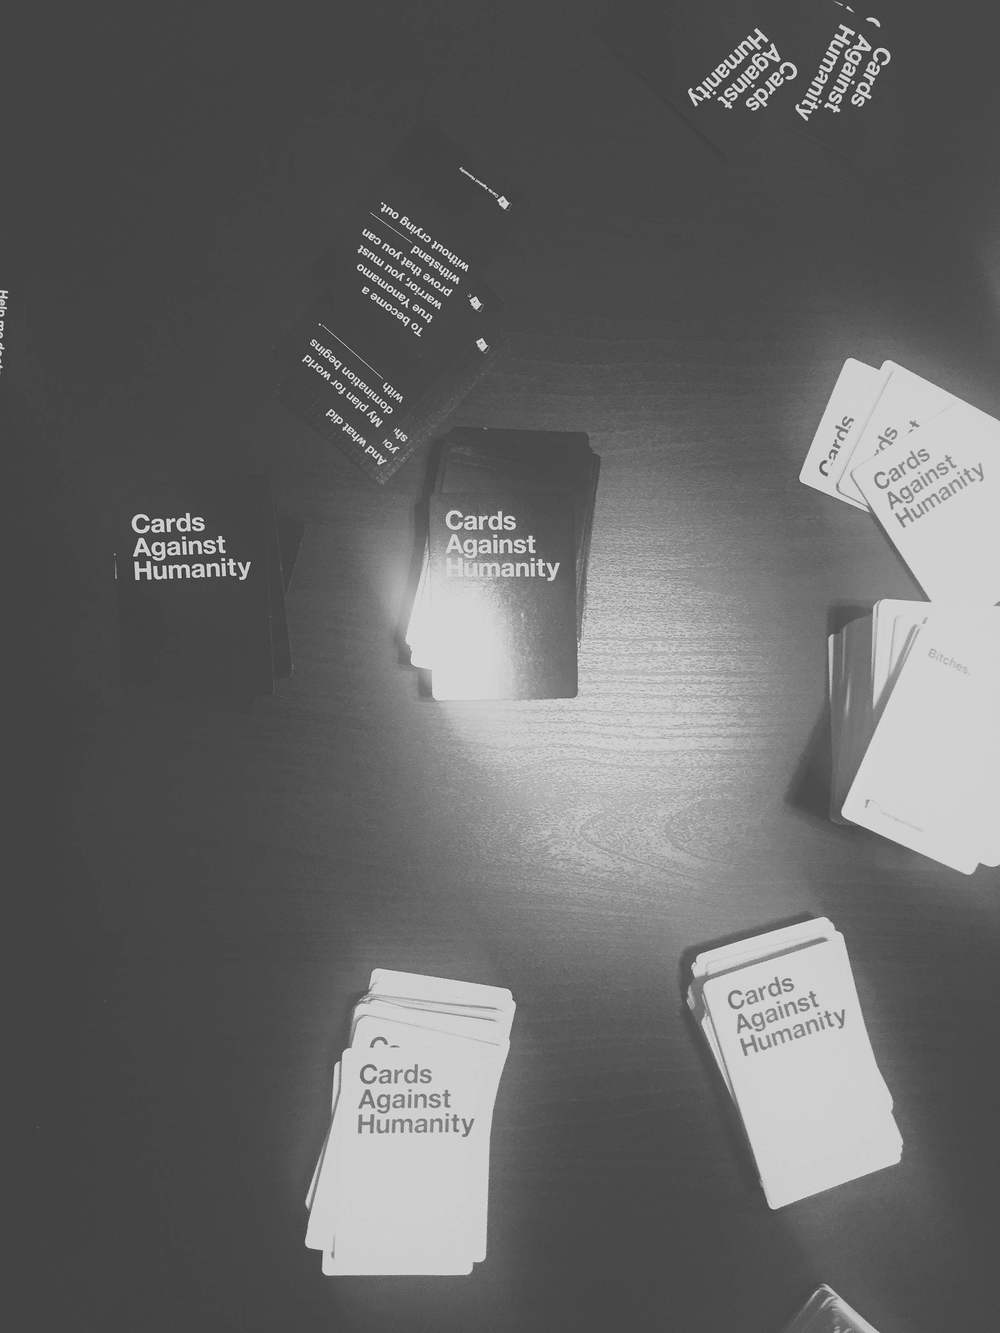 DAY 29- Arrived in Austin and played a few rounds of Cards Against Humanity.